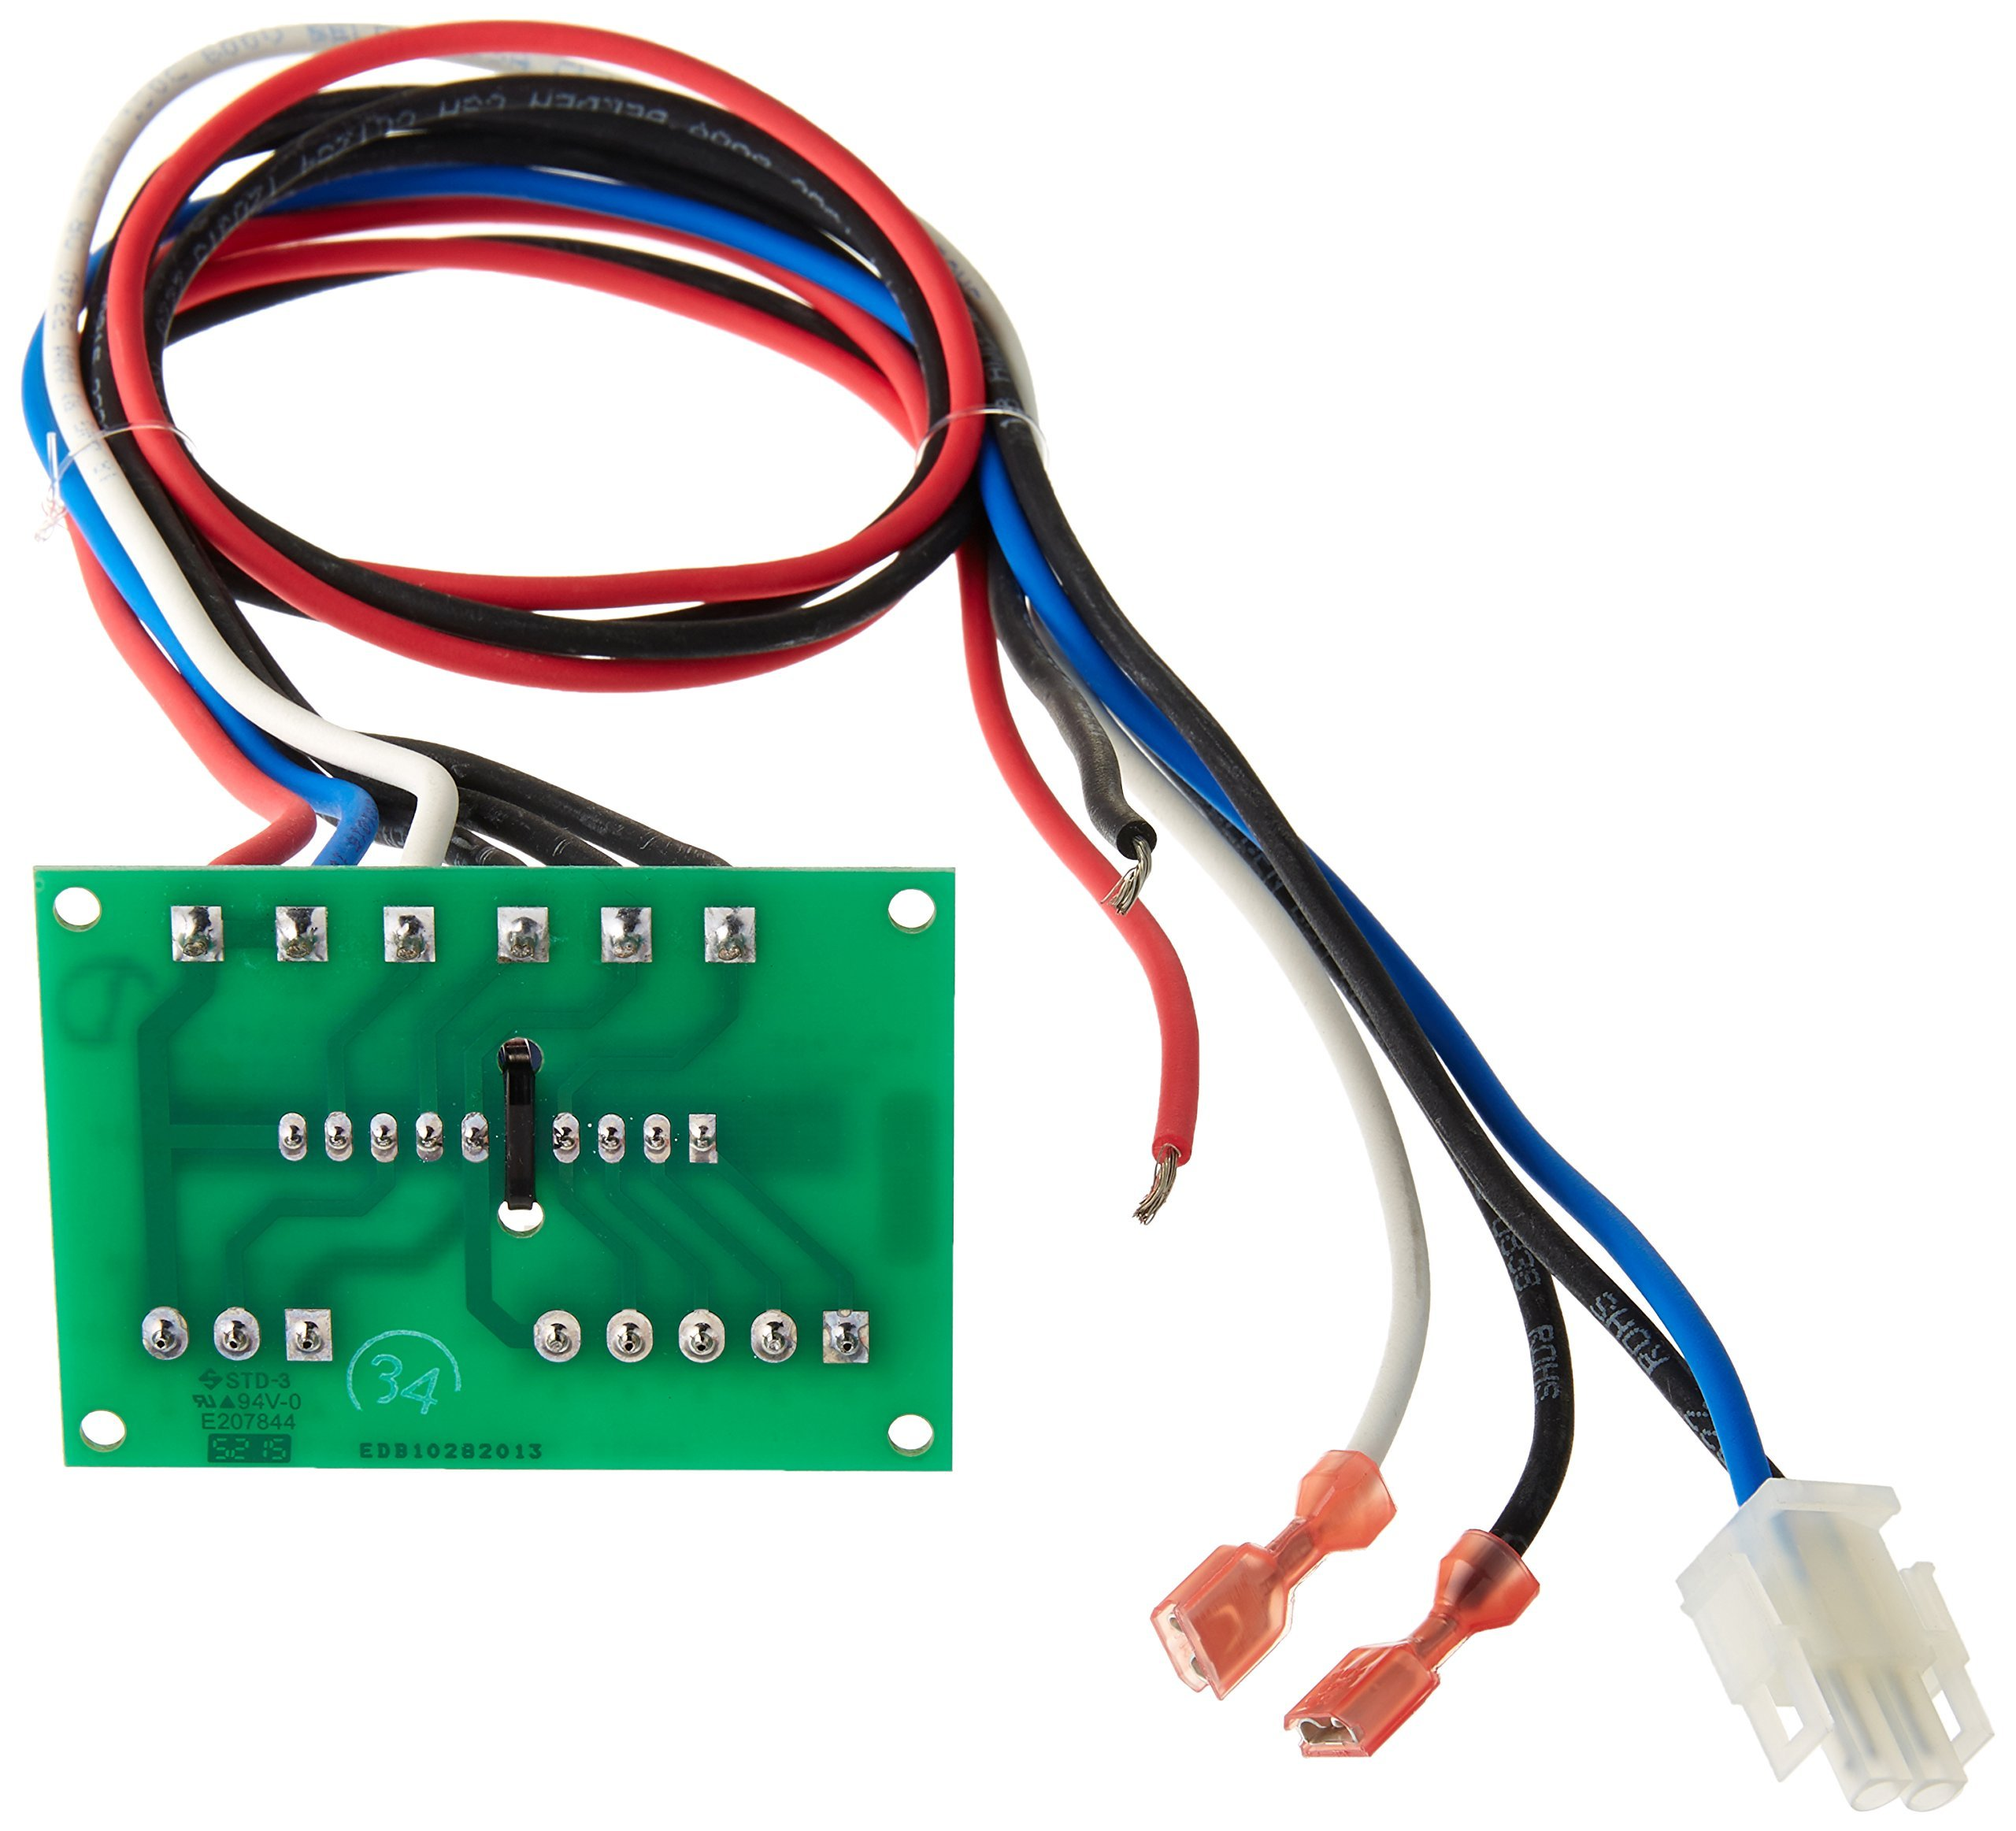 Zodiac R0458100 Power Distribution Circuit Board Replacement for Zodiac Jandy LXi Low NOx Pool and Spa Heaters by Zodiac